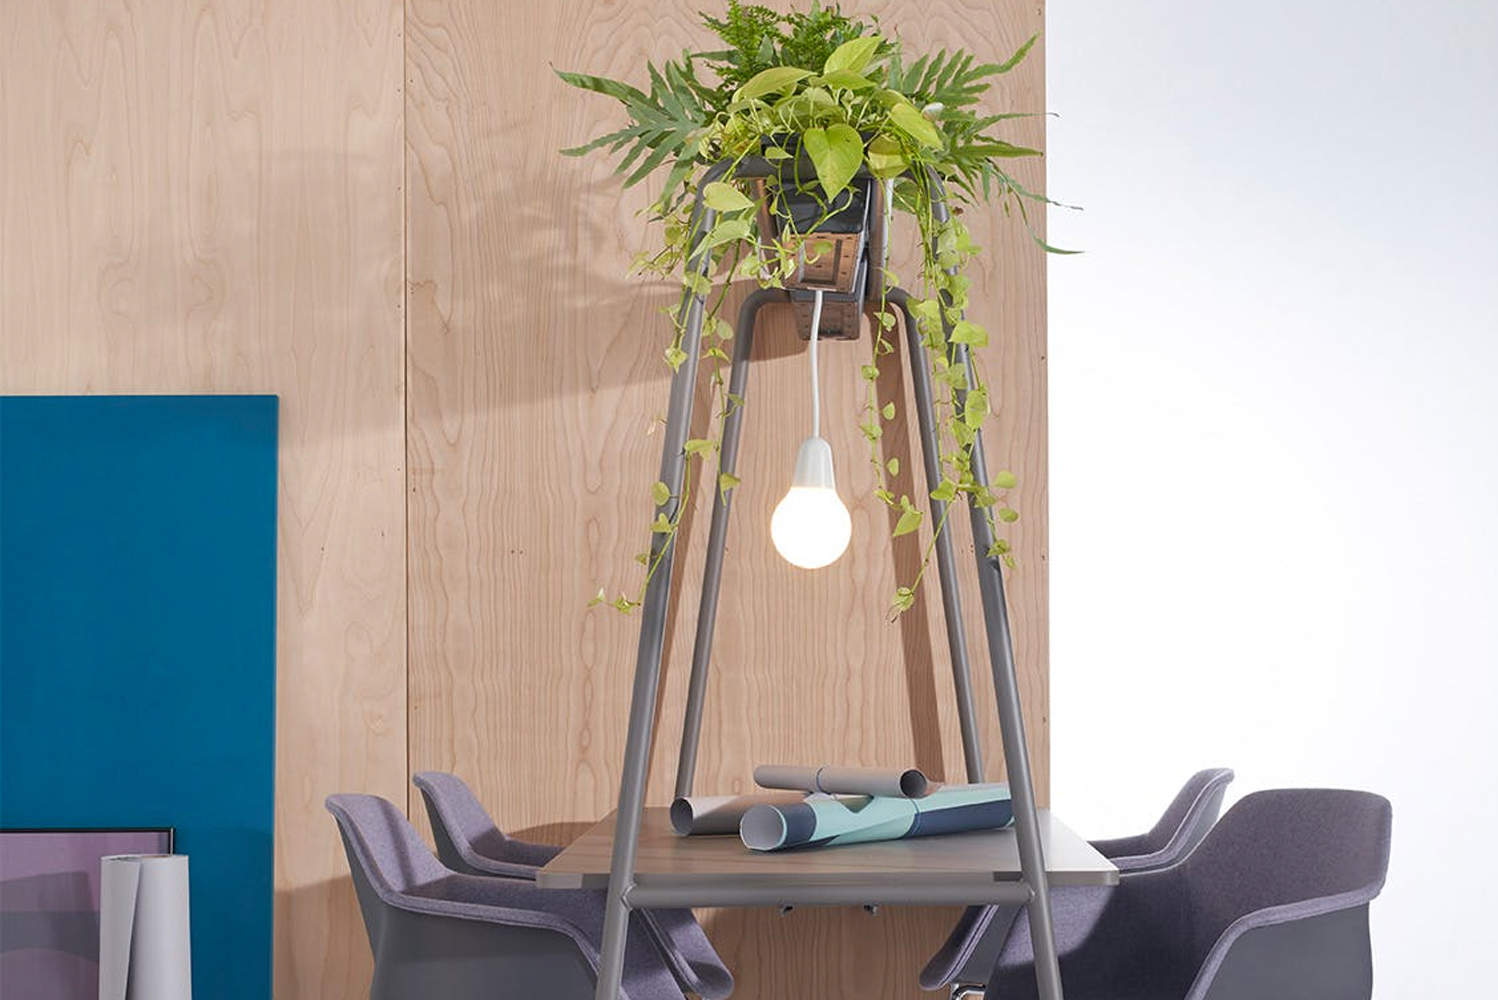 Accessories include planter boxes, chair suspension (for easier cleaning underneath), and built-in castors for easy movement around the room.